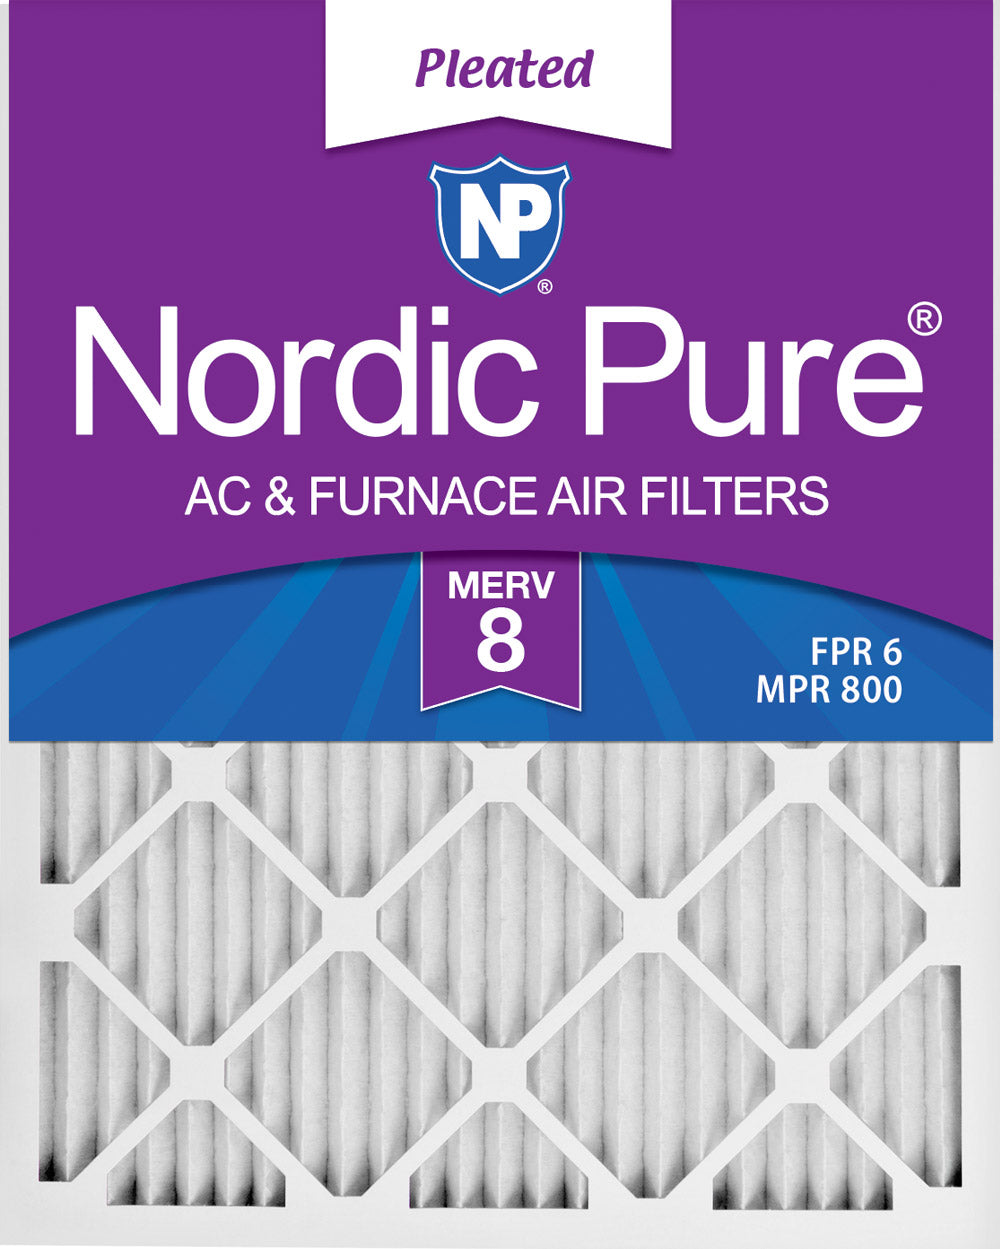 14x24x1 Pleated MERV 8 Air Filters 6 Pack